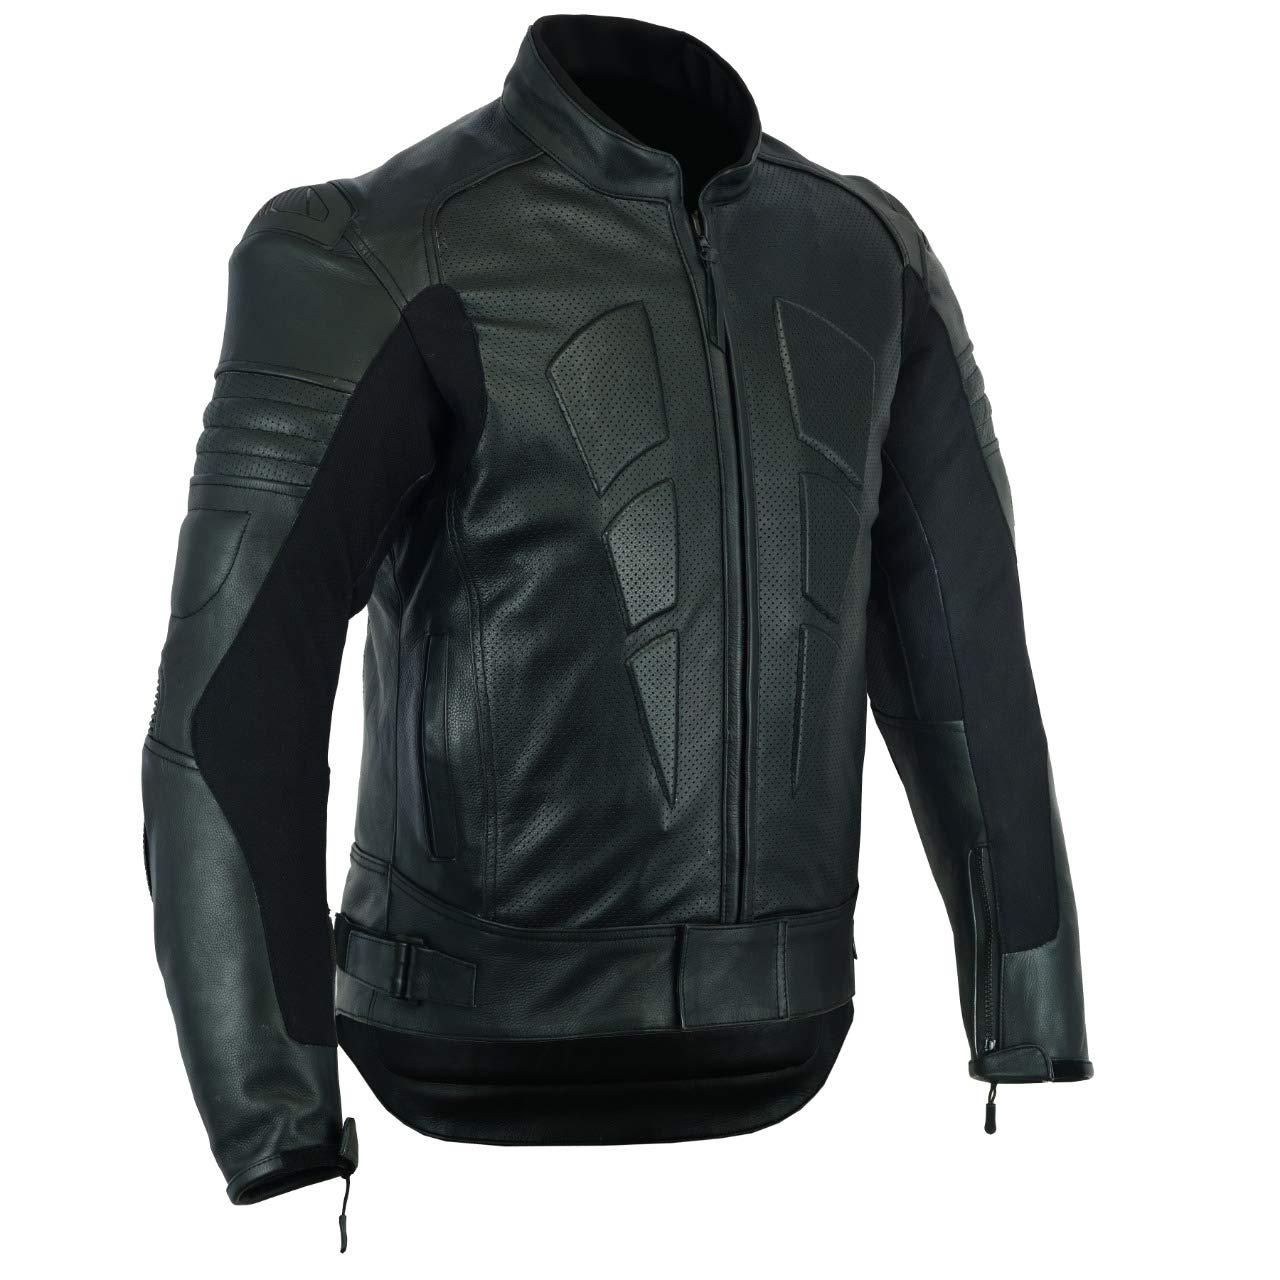 FULL GRAIN XL ARMORED PERFORATED BLACK WITH EXTERNAL ARMOR MBJ-1728A Men,s MOTORCYCLE BIKER ARMORED RACER JACKET LEATHER